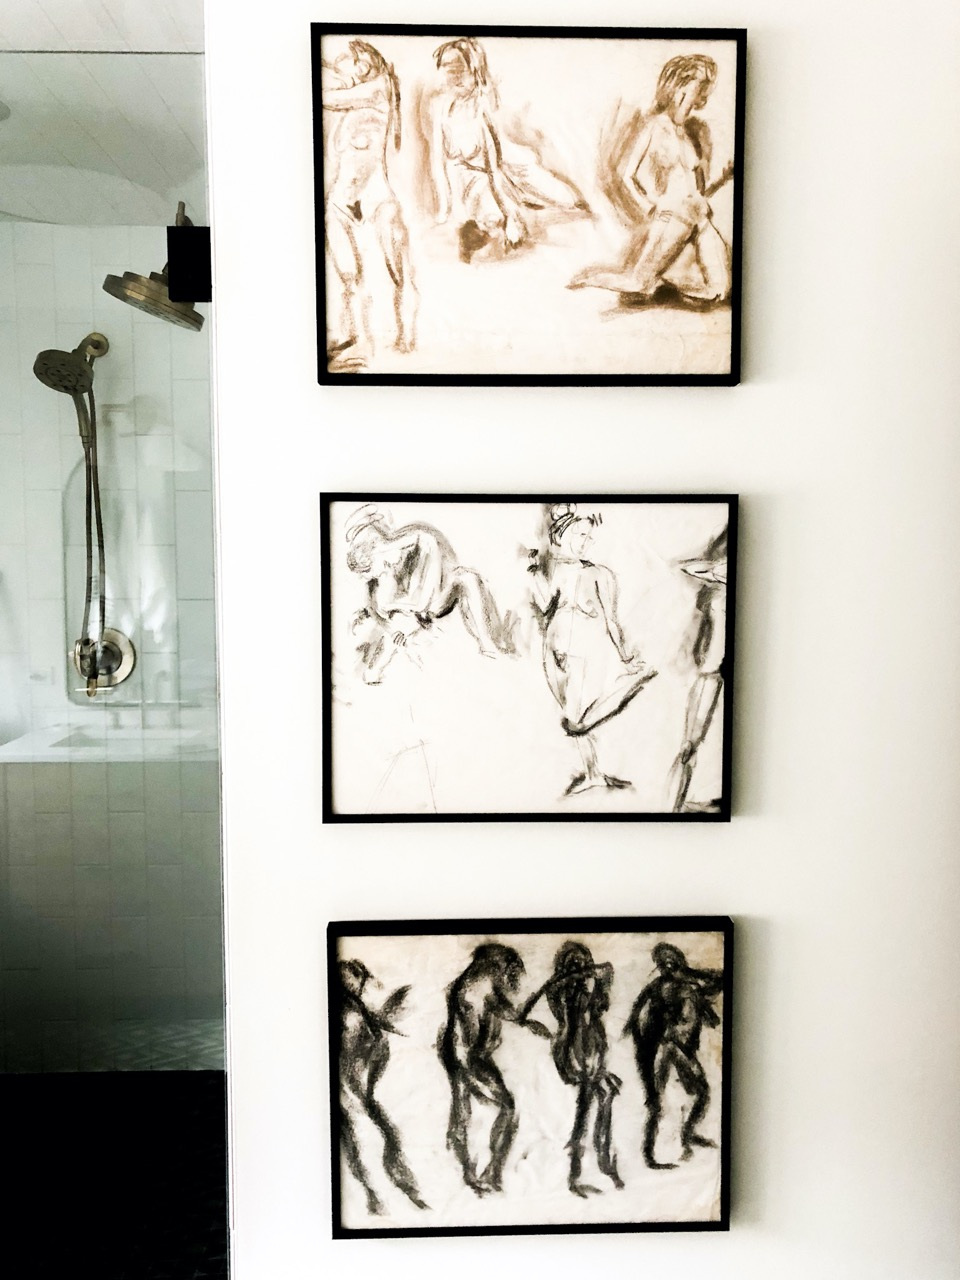 High-resolution art in bathroom